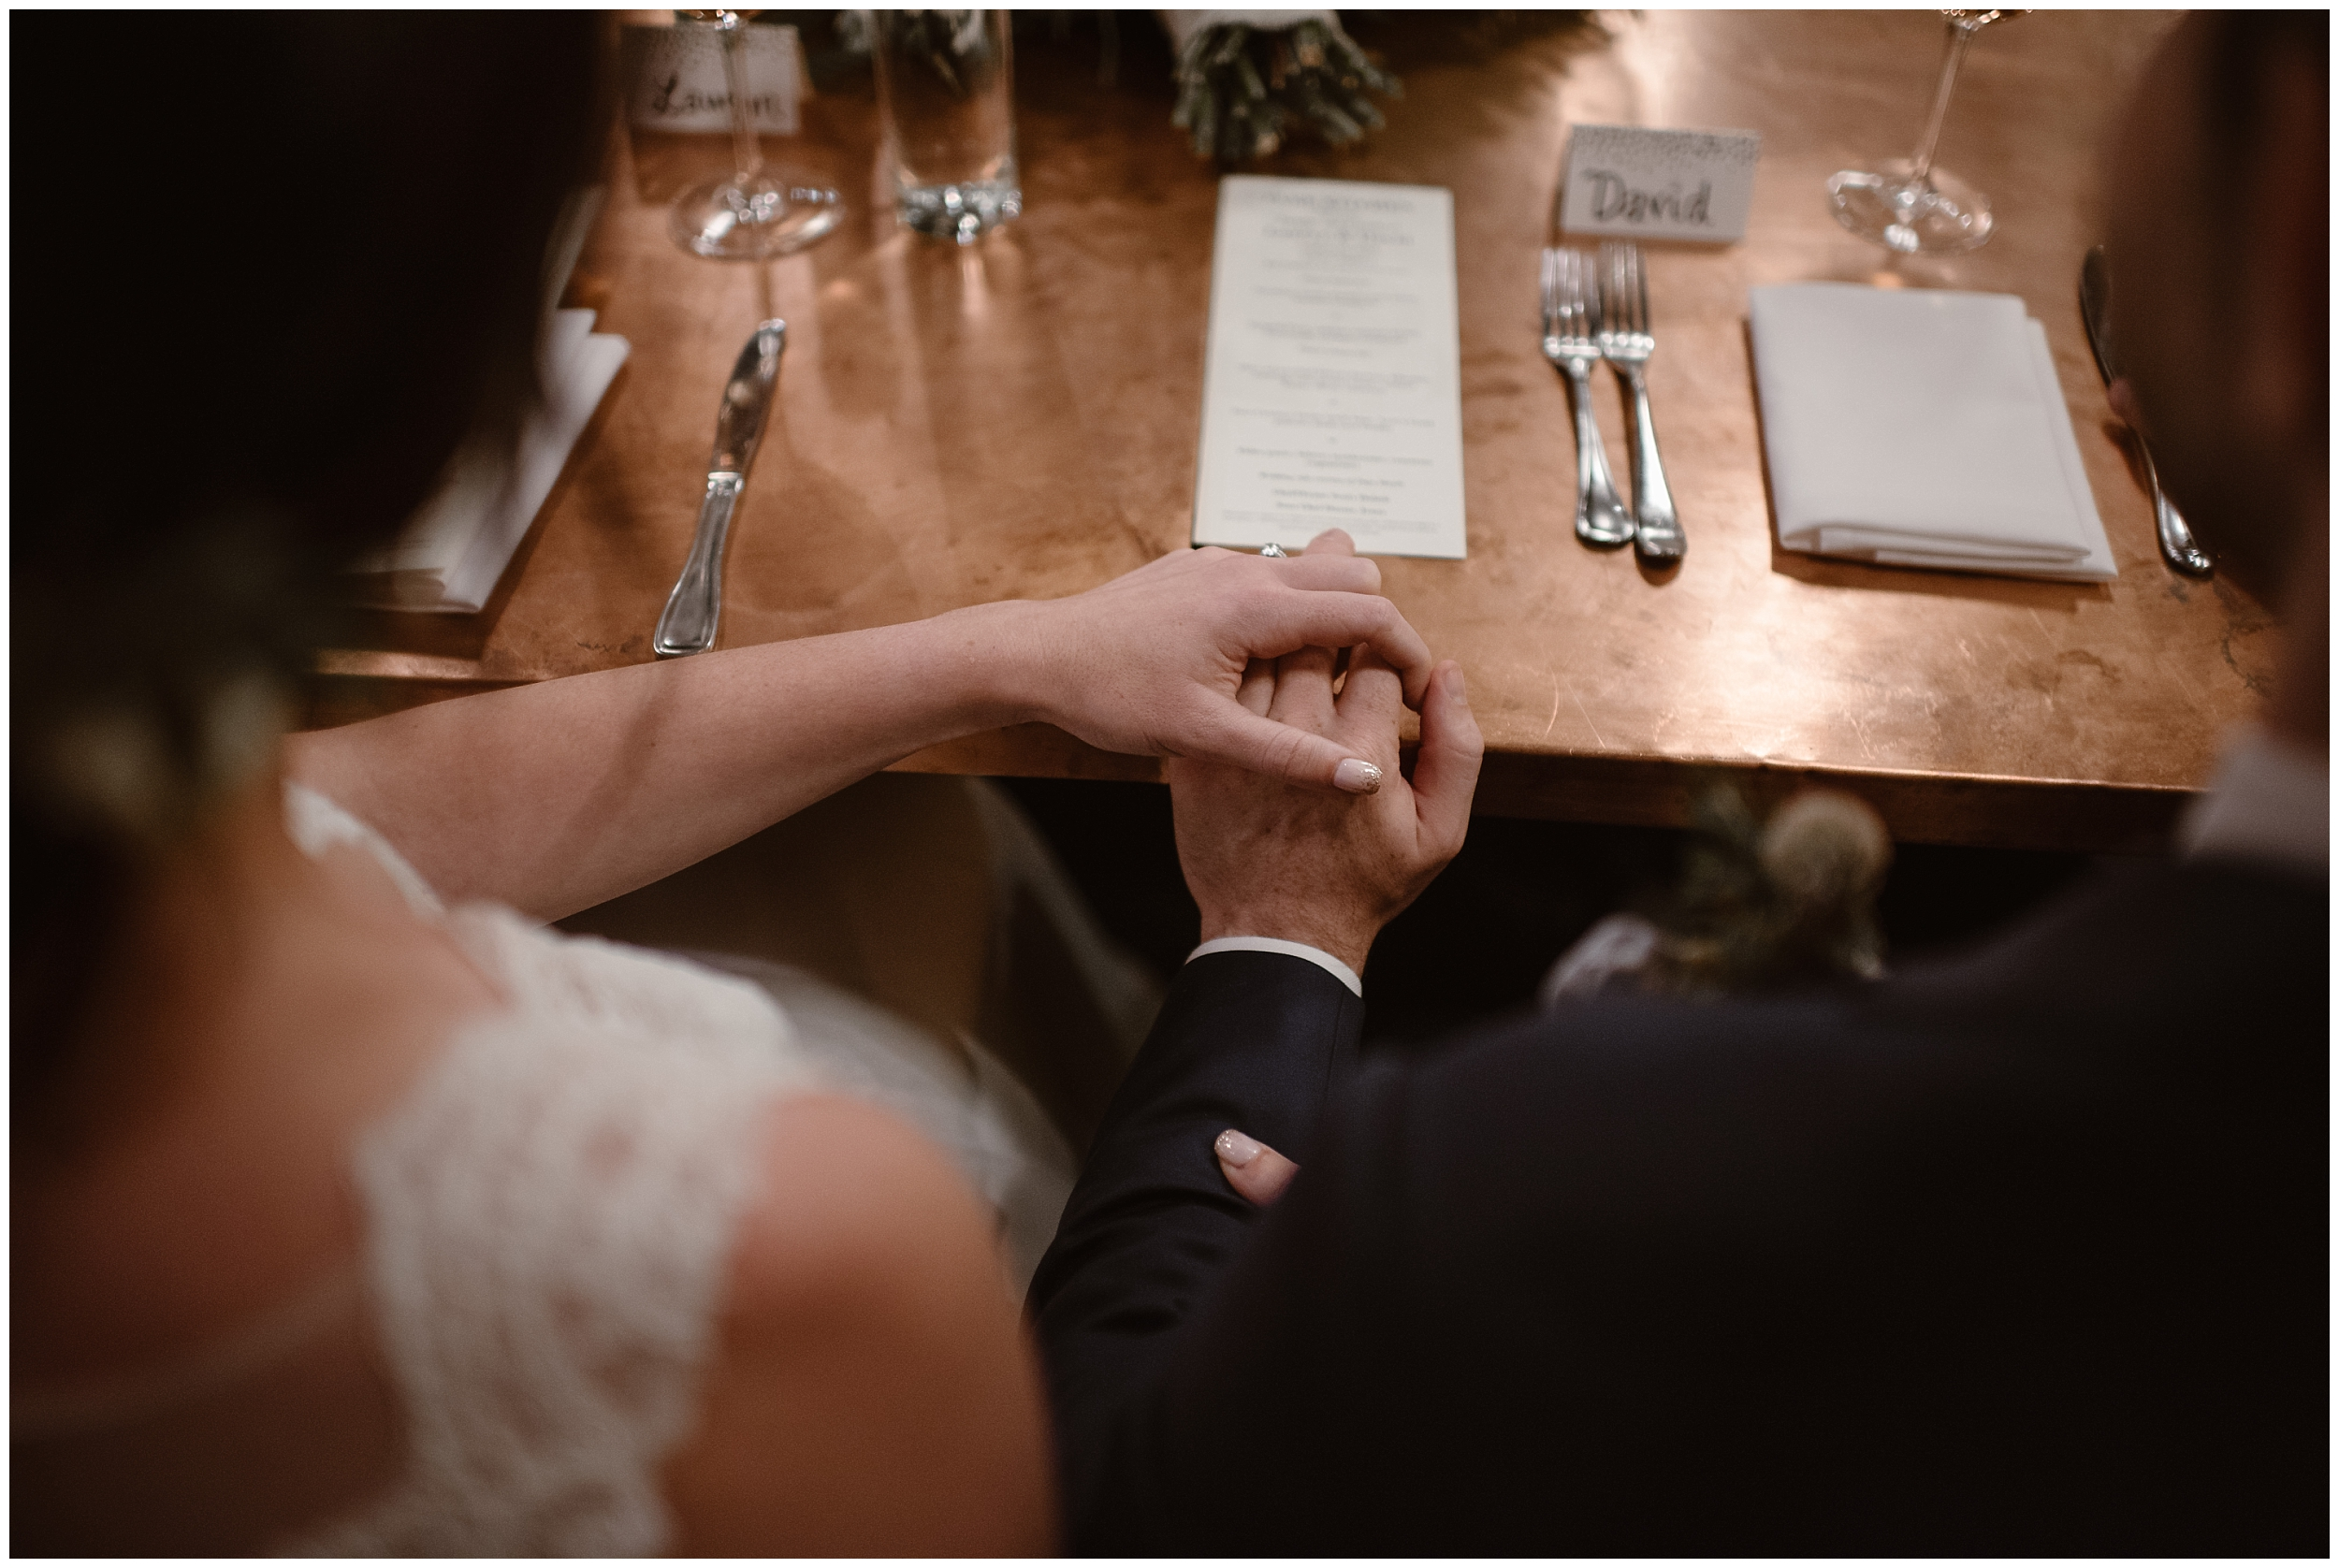 Lauryn and David take hands during their reception after eloping at a Portland restaurant. Their elopement ceremony, held in the Columbia River Gorge, was just the first portion of their Oregon elopement experience.